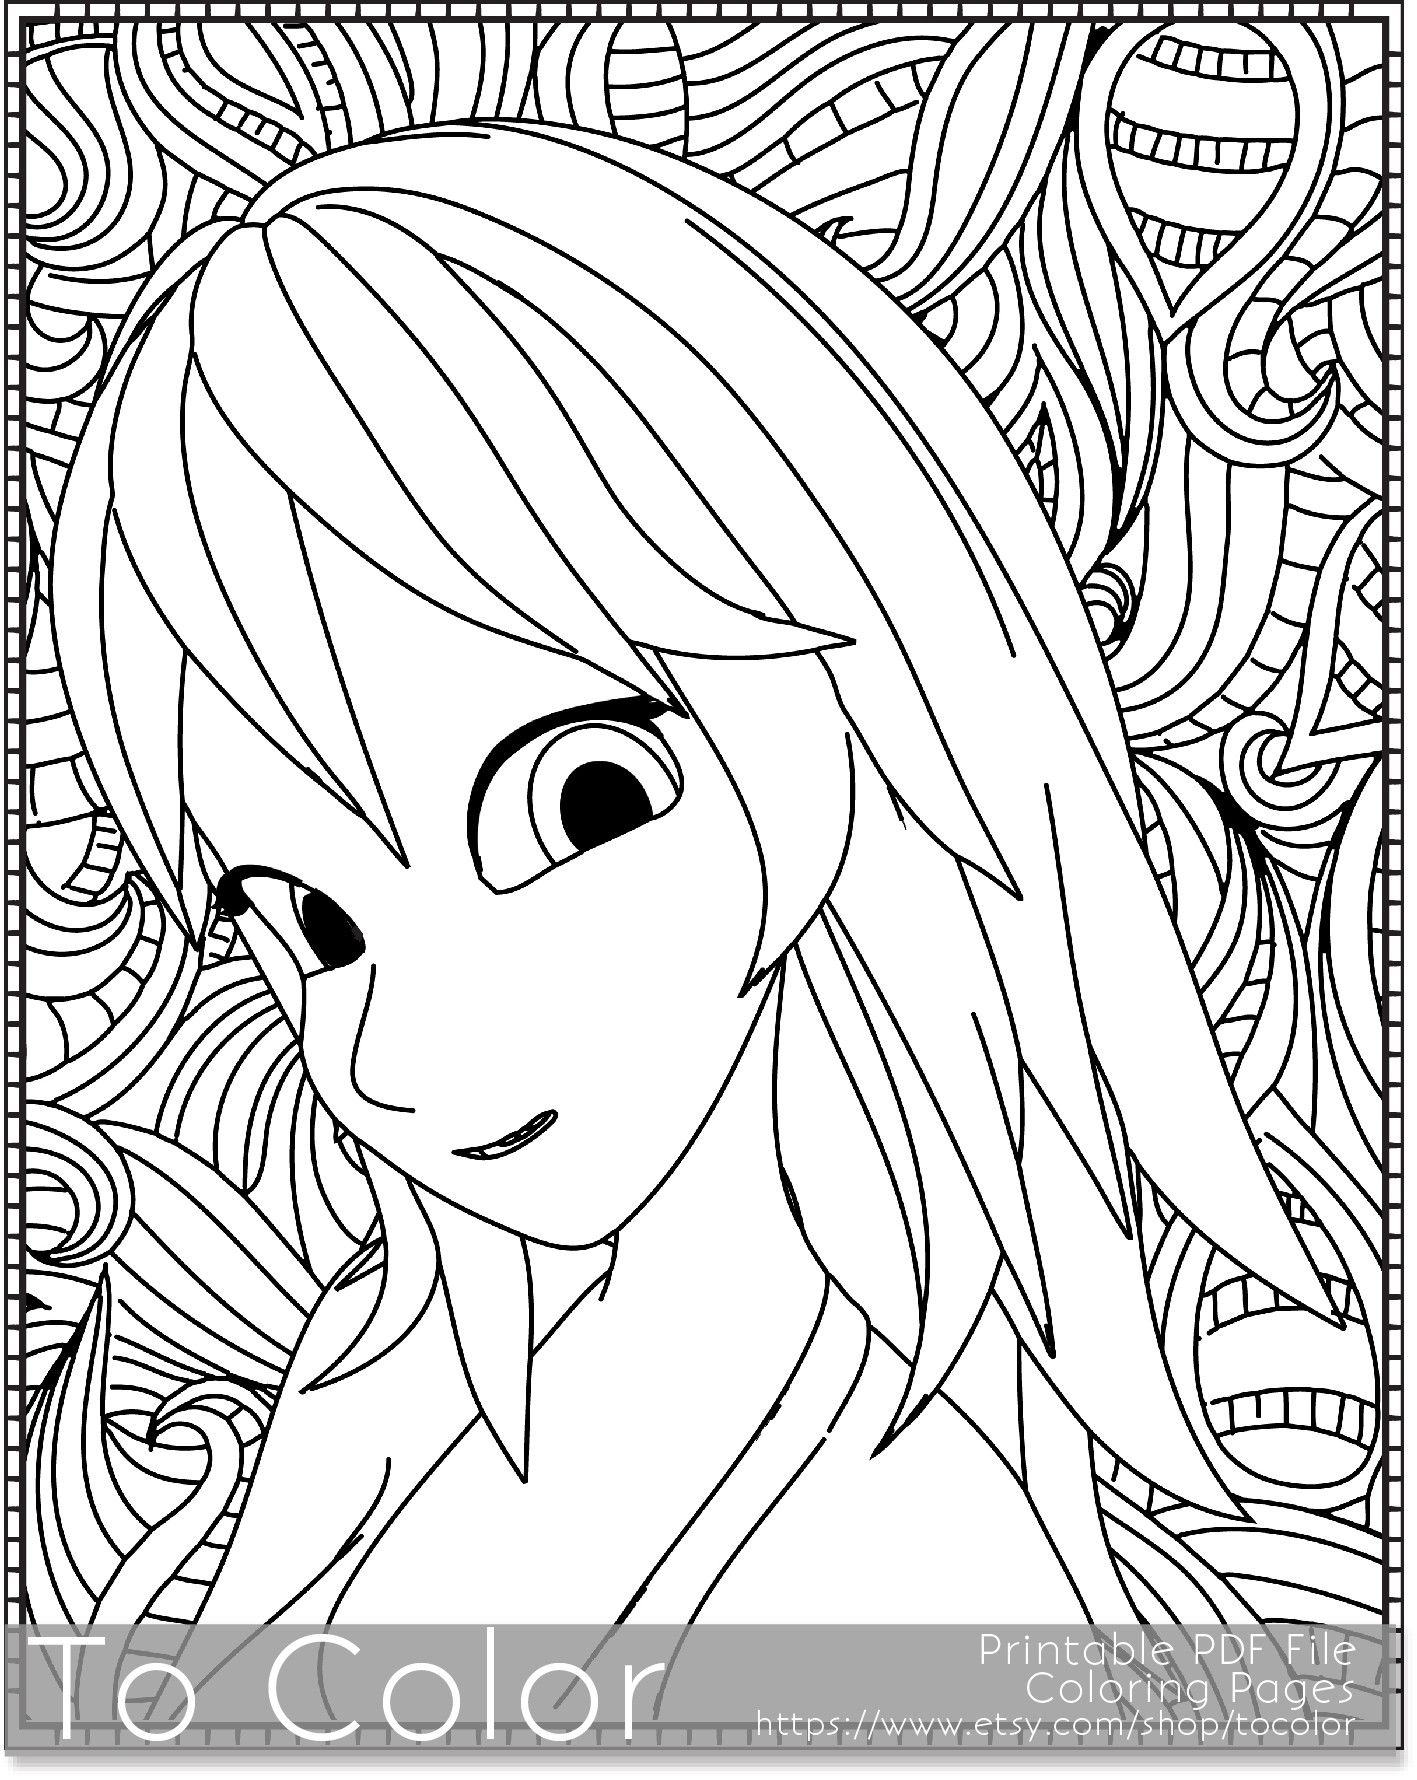 this printable coloring page for grownups features a young